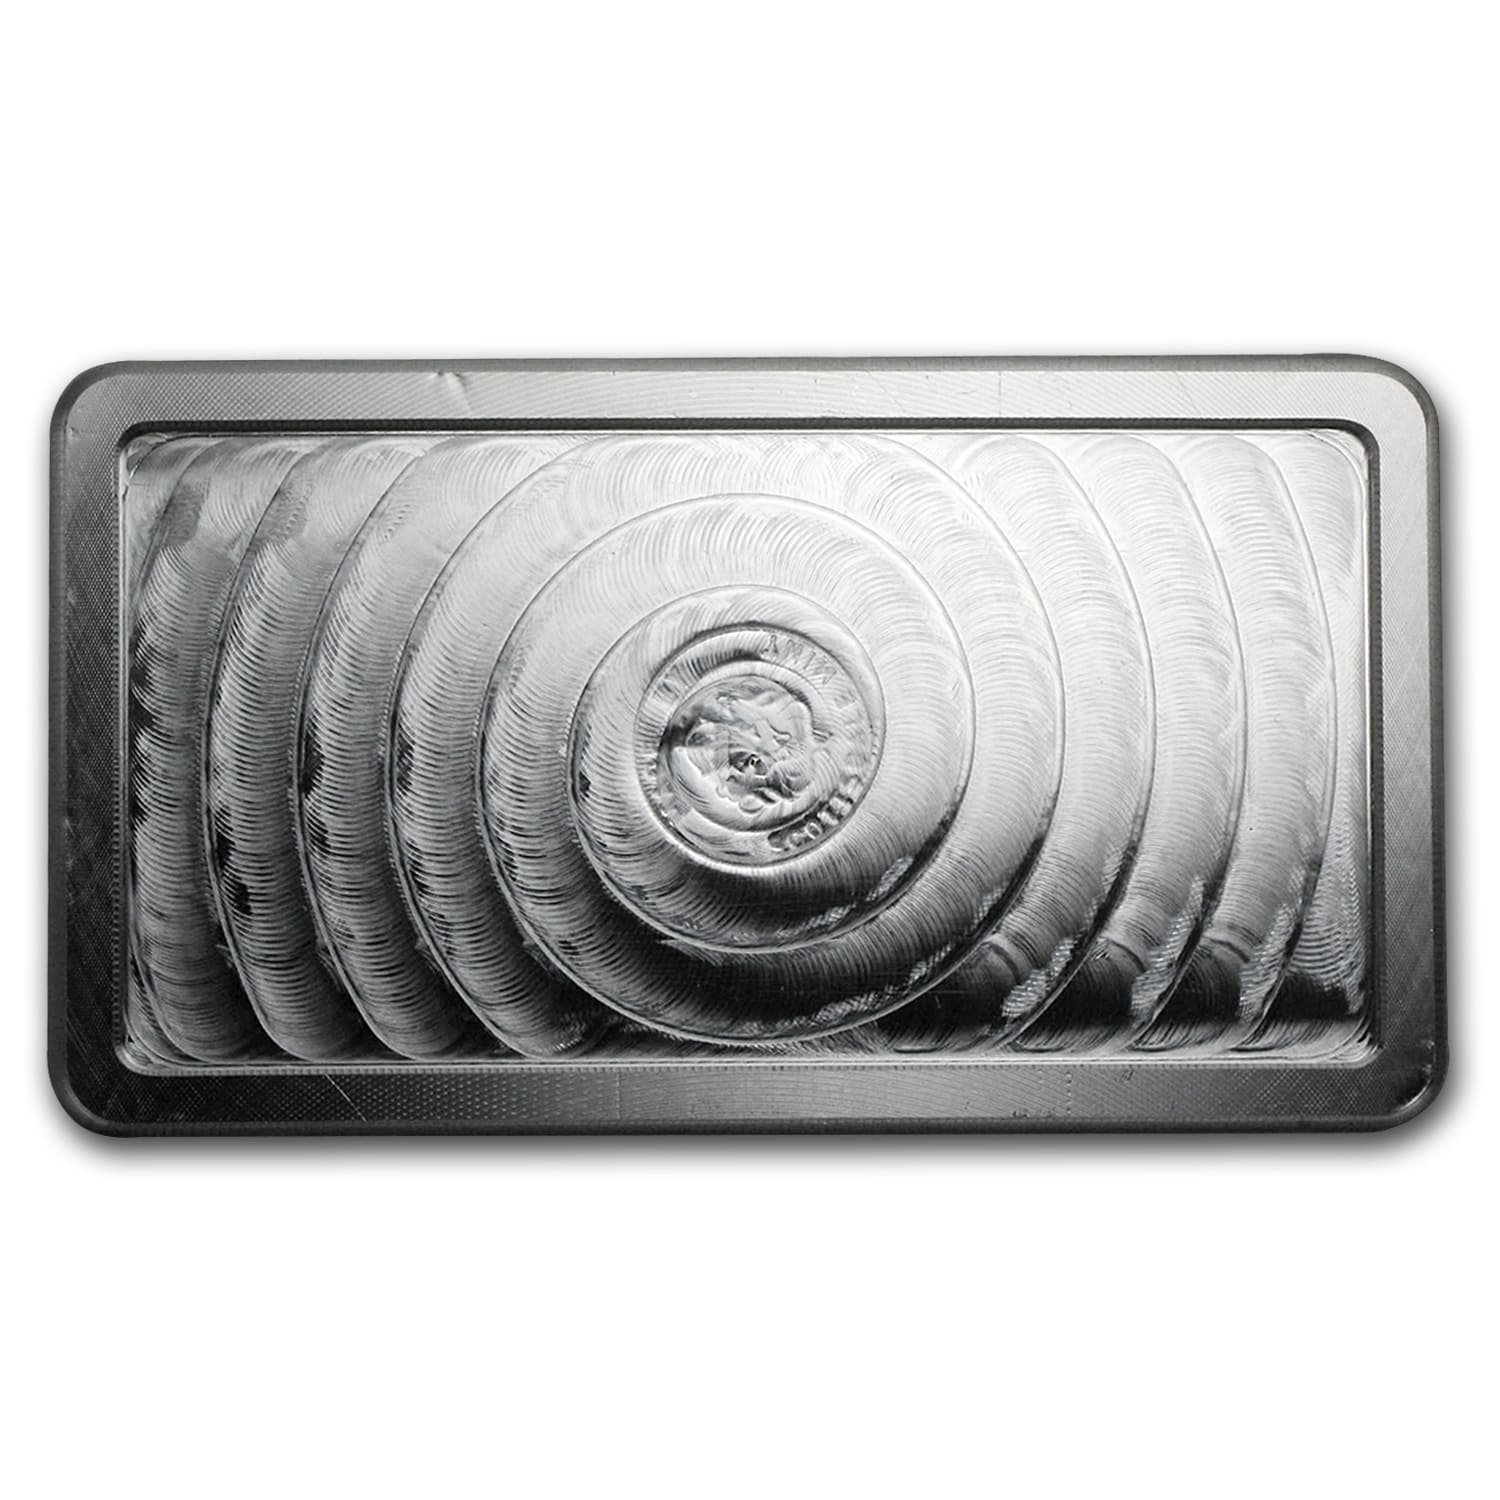 10 oz Silver Bar - APMEX (Stackable, IRA approved)(10/17)